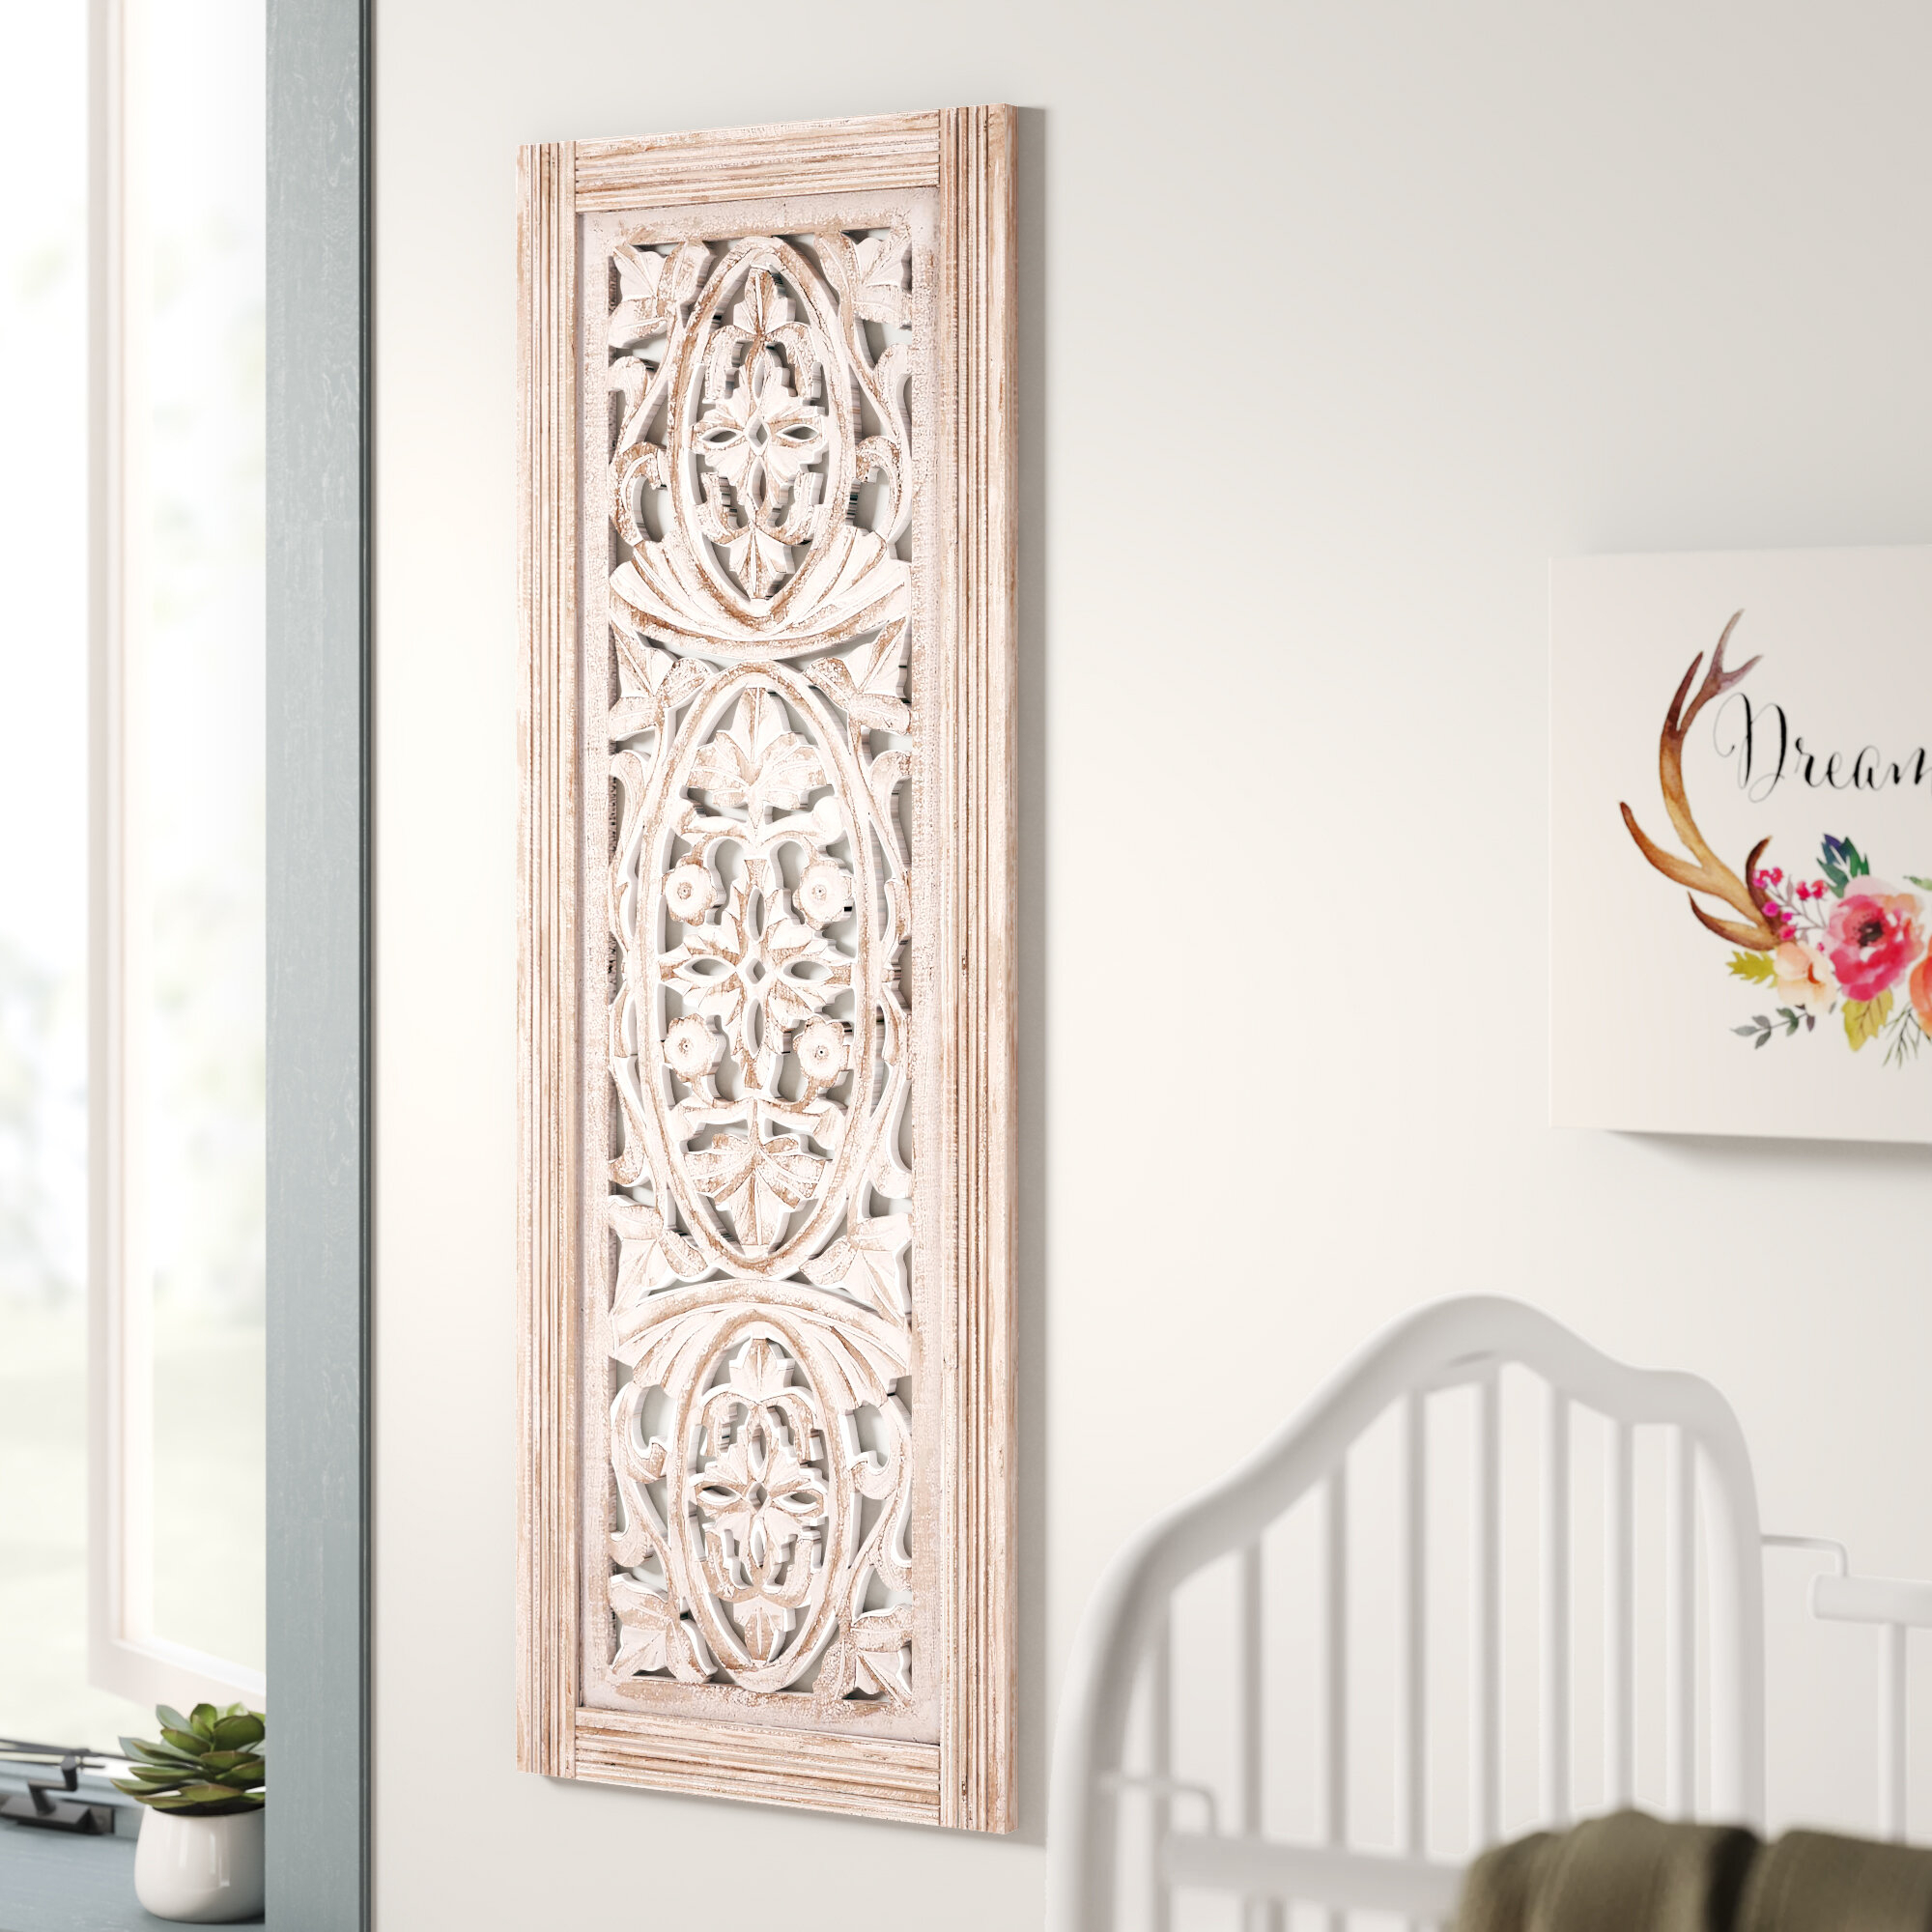 2019 1 Piece Ortie Panel Wall Decor With Mistana Beige Distressed Wood Wall Décor & Reviews (Gallery 19 of 20)